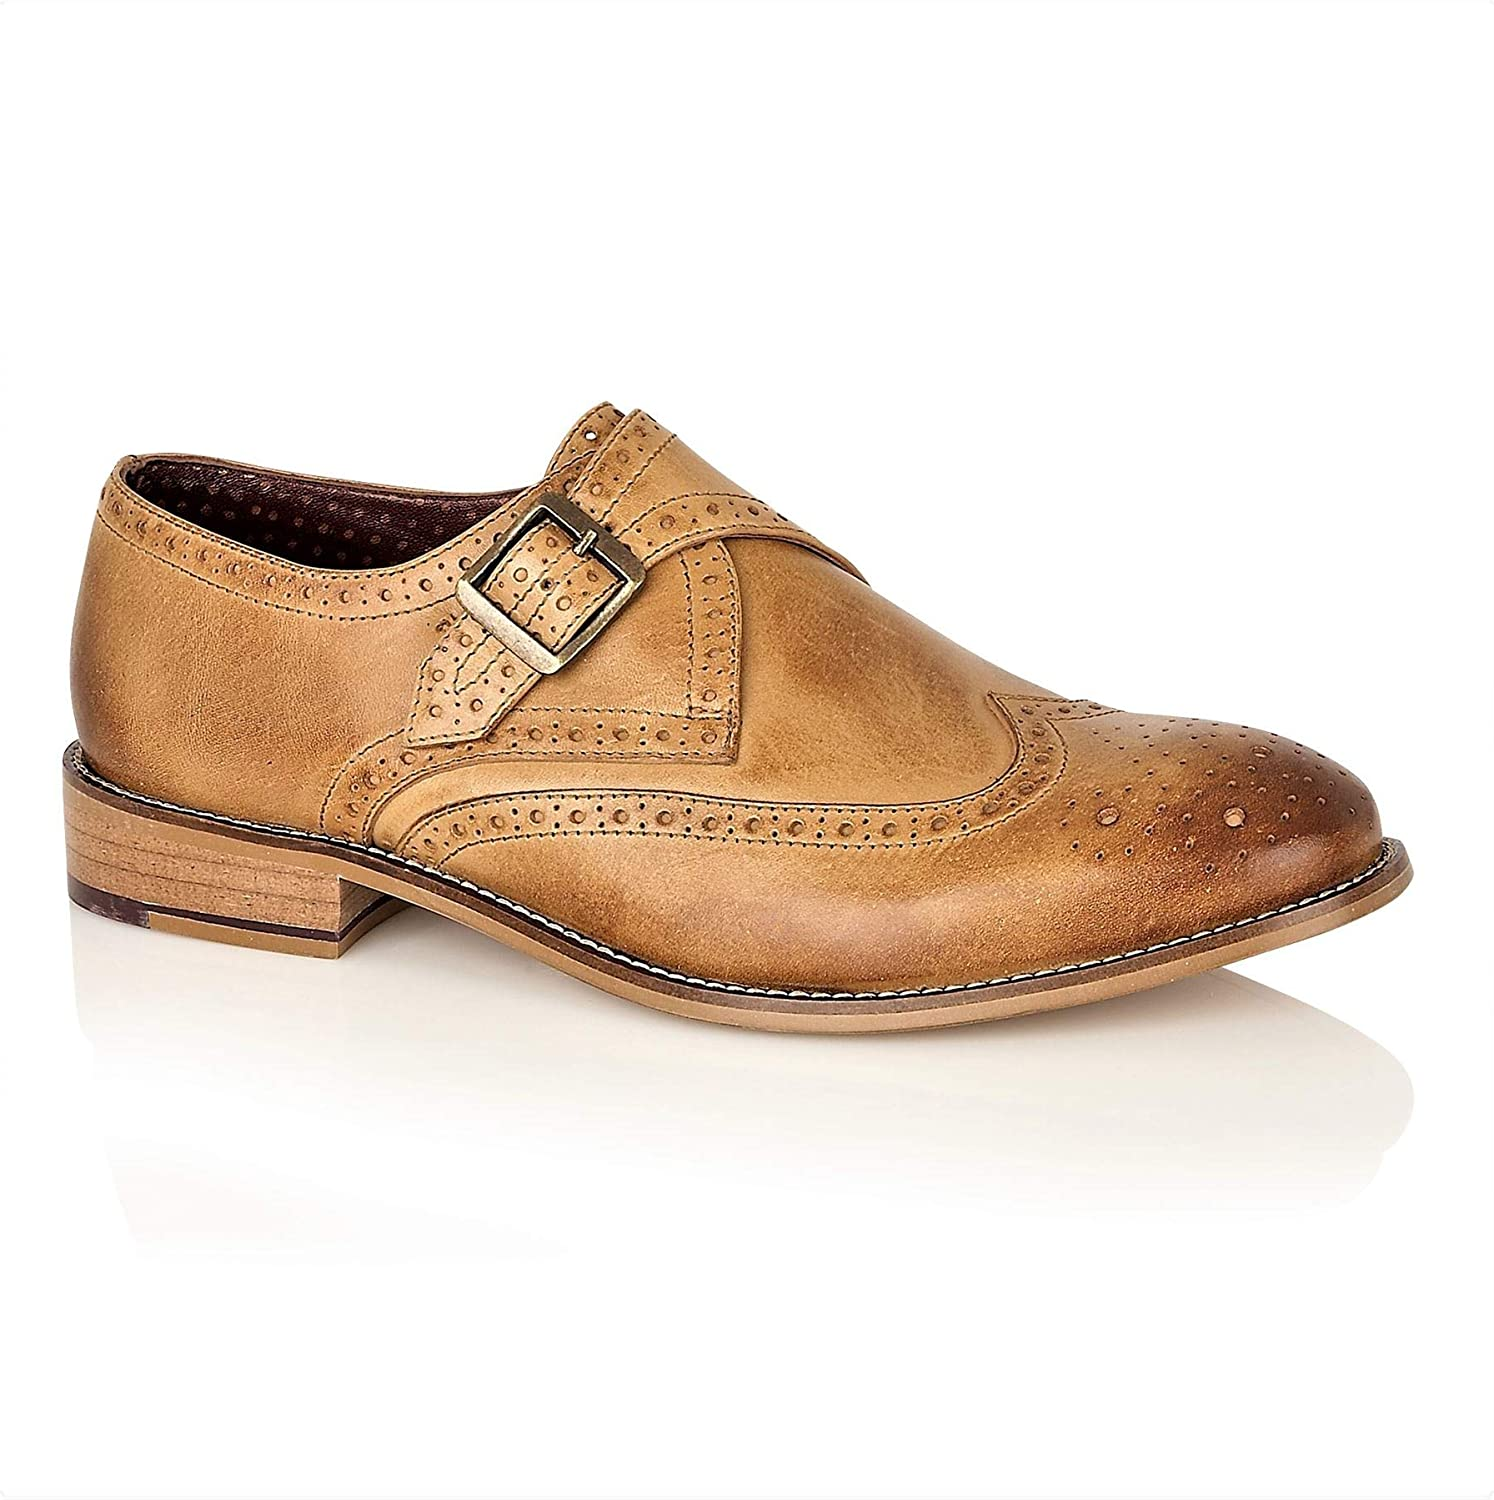 London Brogues Sky Walker Gatsby Mens Leather Wingtip Lace Up Slip On Brogues Two Tone Colour Tassel shoes Size 7 to 15